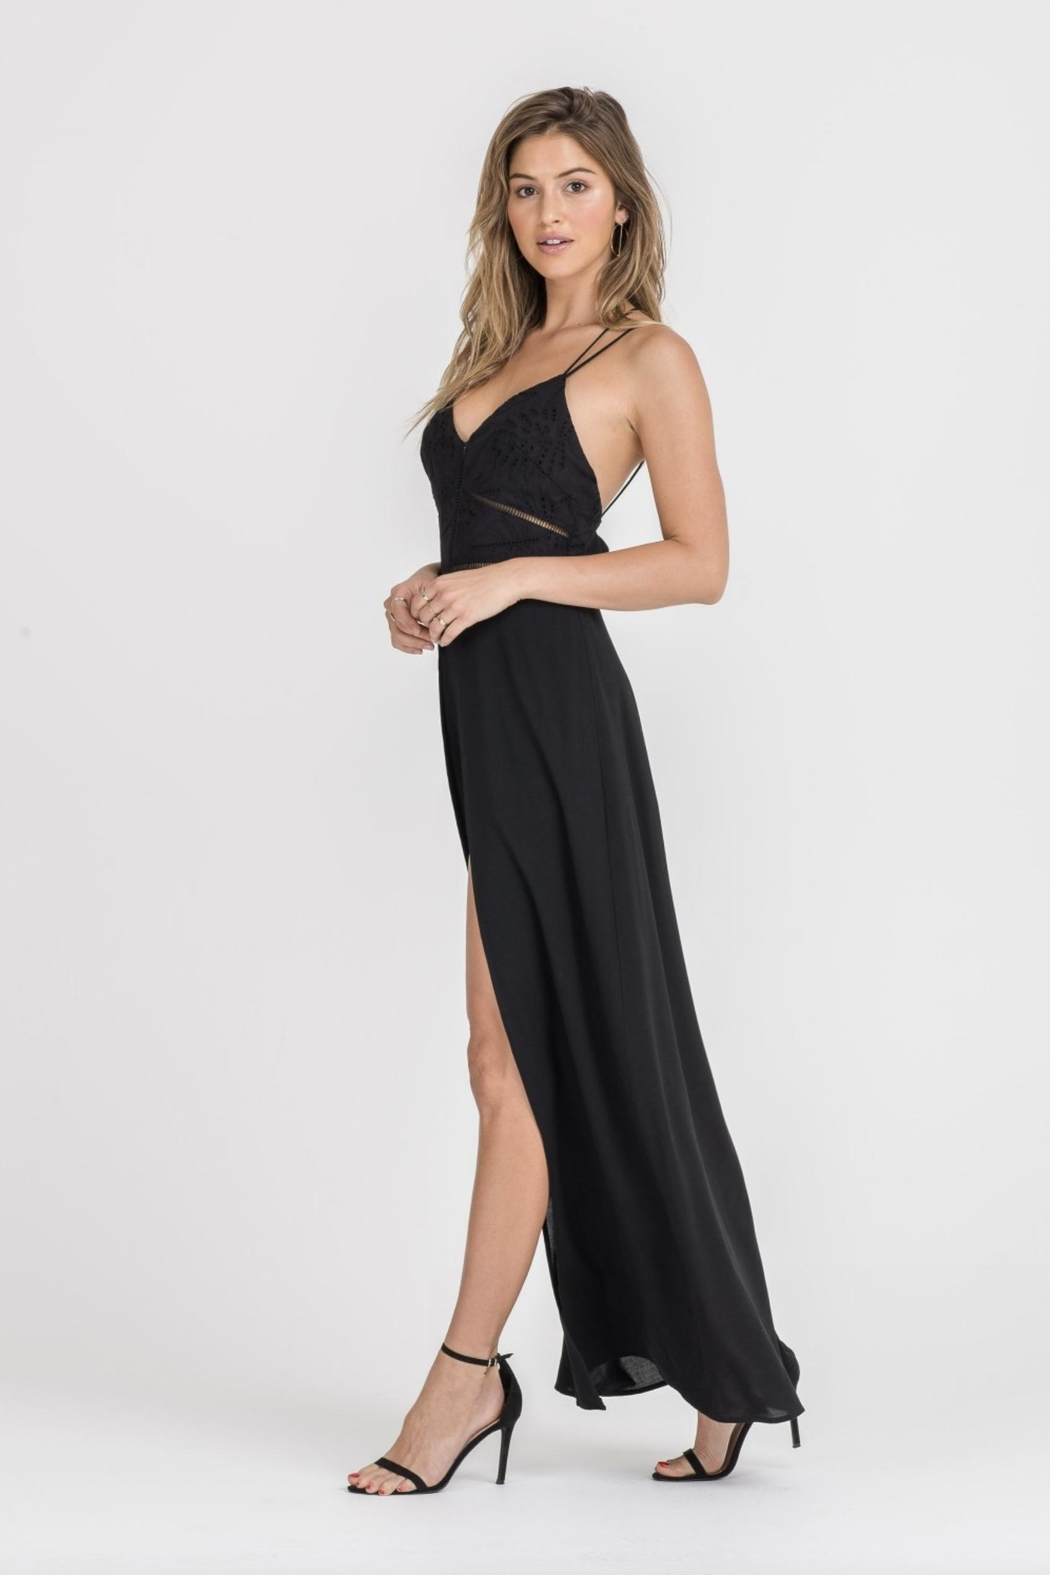 28e5fe760a99 Lush Black Skirted Romper from Florida by Apricot Lane St. Armands ...